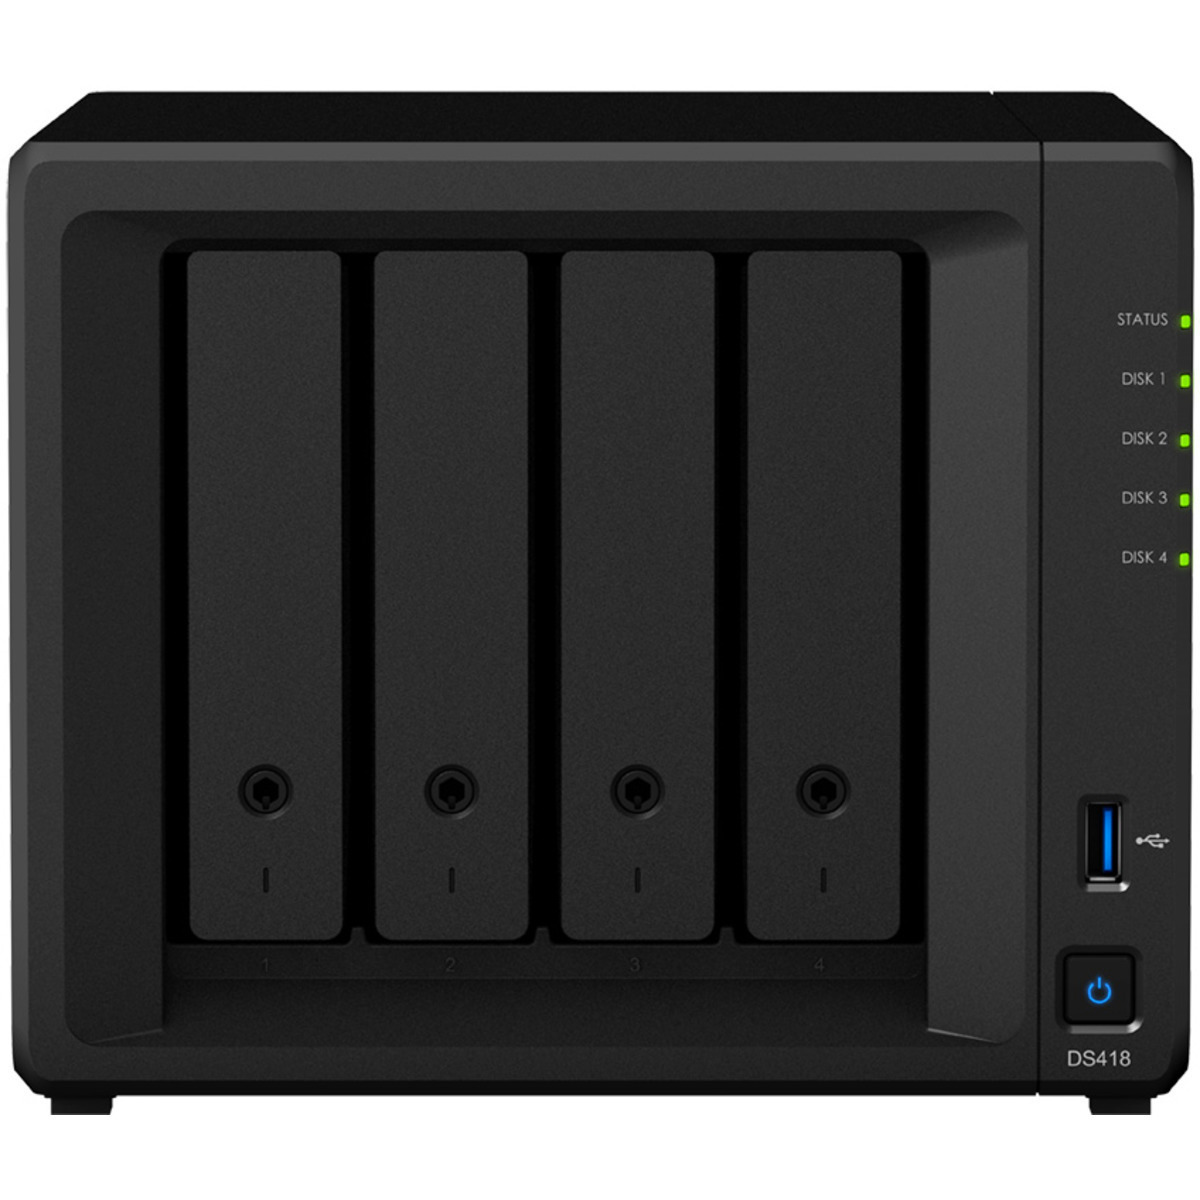 buy $2372 Synology DiskStation DS418 48tb Desktop NAS - Network Attached Storage Device 4x12000gb Western Digital Gold WD121KRYZ 3.5 7200rpm SATA 6Gb/s HDD ENTERPRISE Class Drives Installed - Burn-In Tested - nas headquarters buy network attached storage server device das new sale raid-5 free shipping usa DiskStation DS418